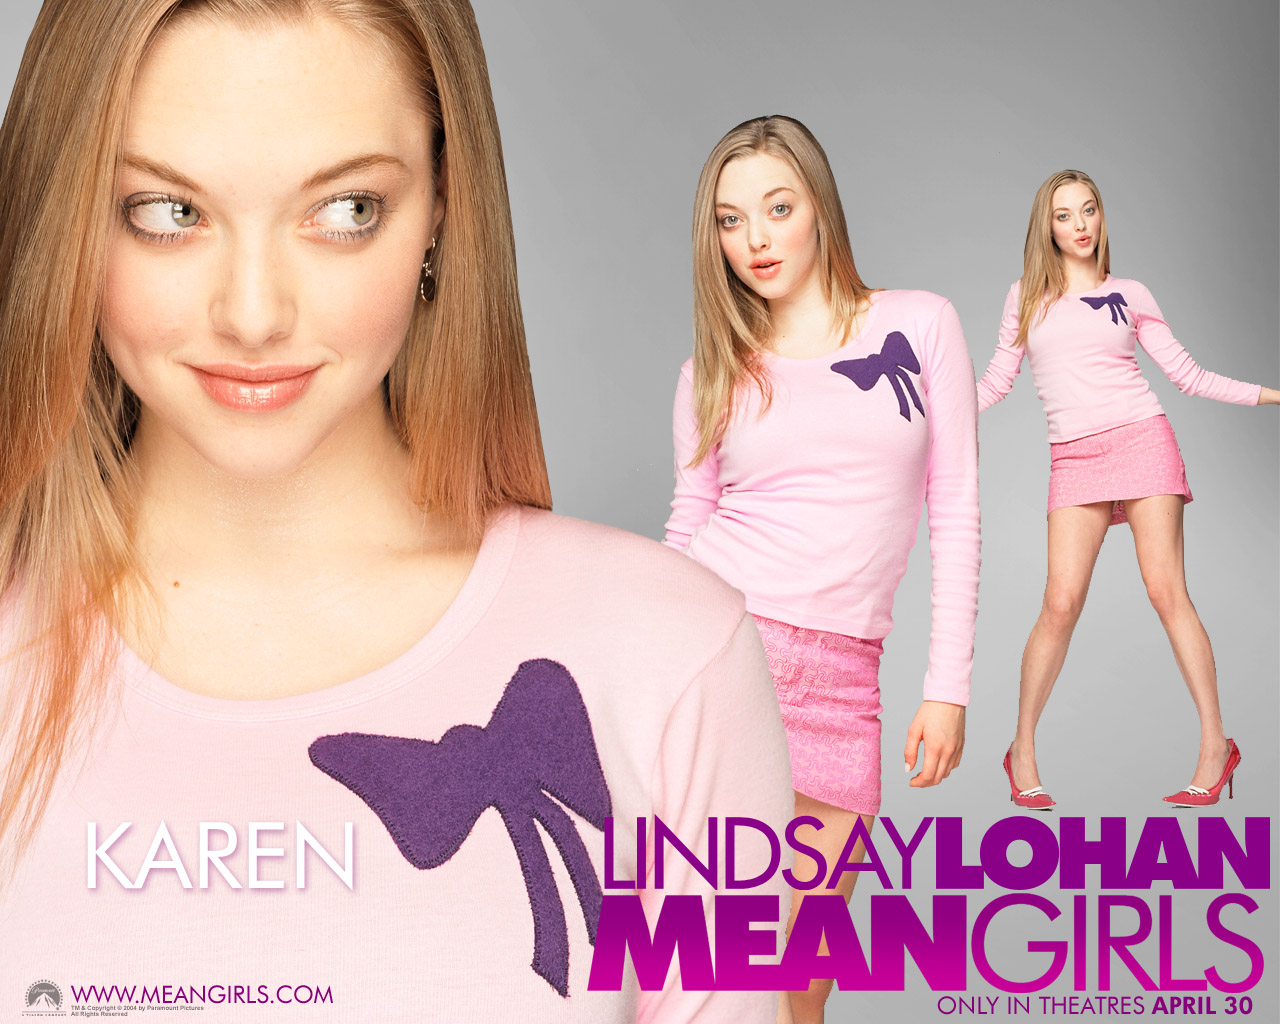 http://2.bp.blogspot.com/_DczaUd0Oqpk/TDvDbLaopbI/AAAAAAAAARA/203vlQOxH_o/s1600/Amanda_Seyfried_in_Mean_Girls_Wallpaper_4_1280.jpg